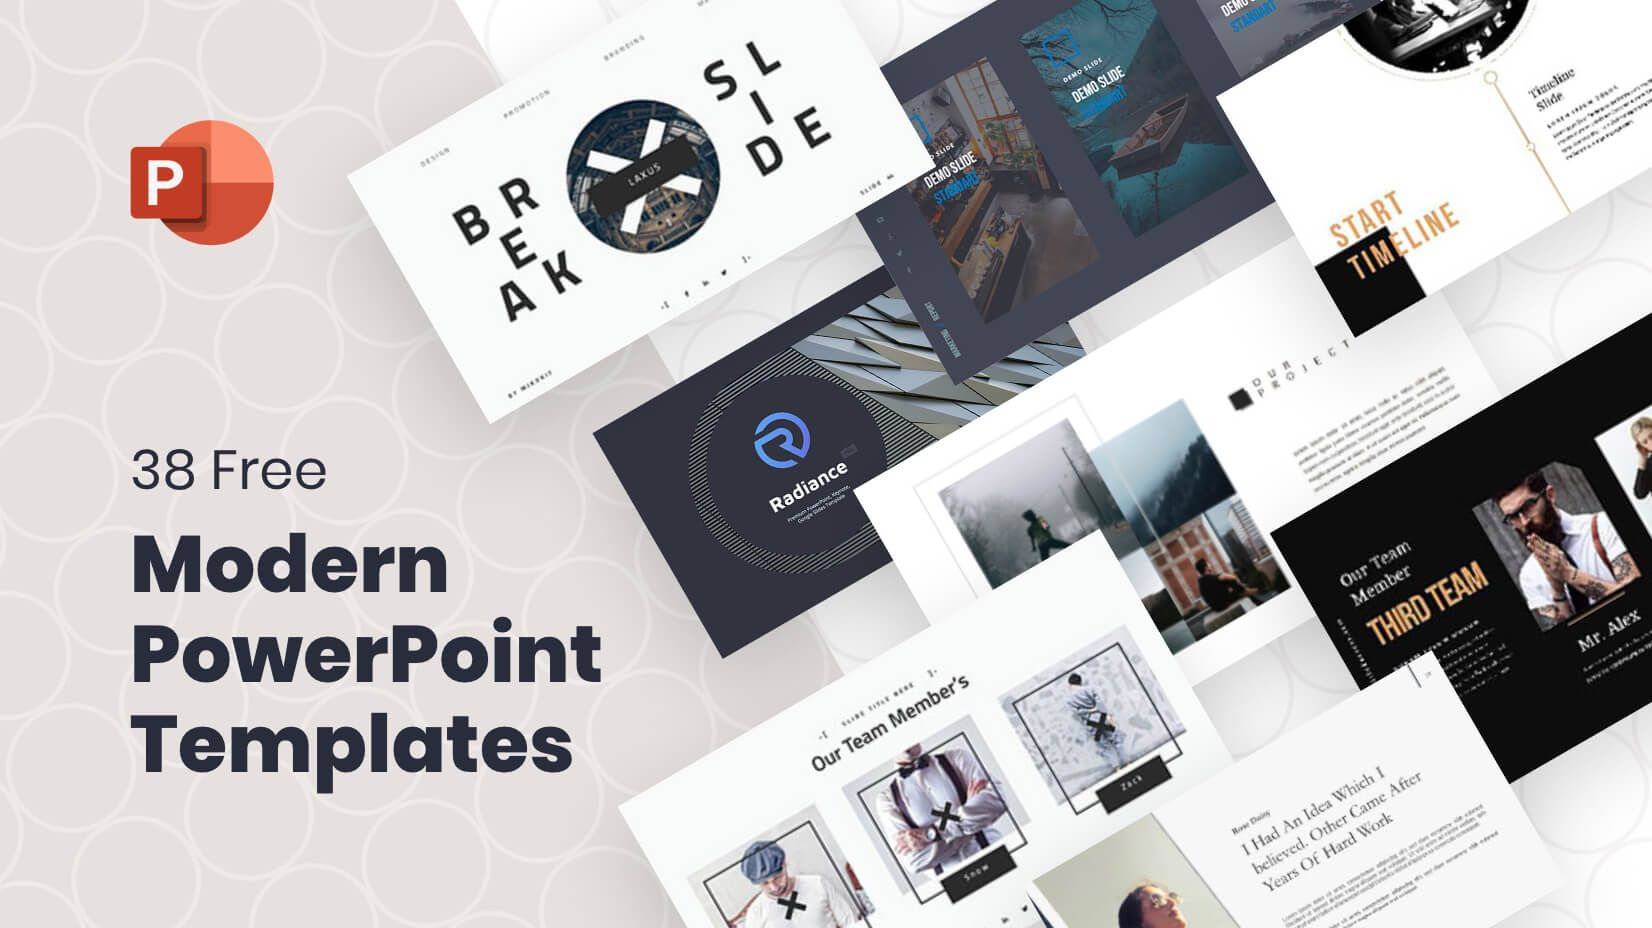 001 Unusual Ppt Slide Design Template Free Download Highest Quality  One Resume Team Introduction Powerpoint PresentationFull